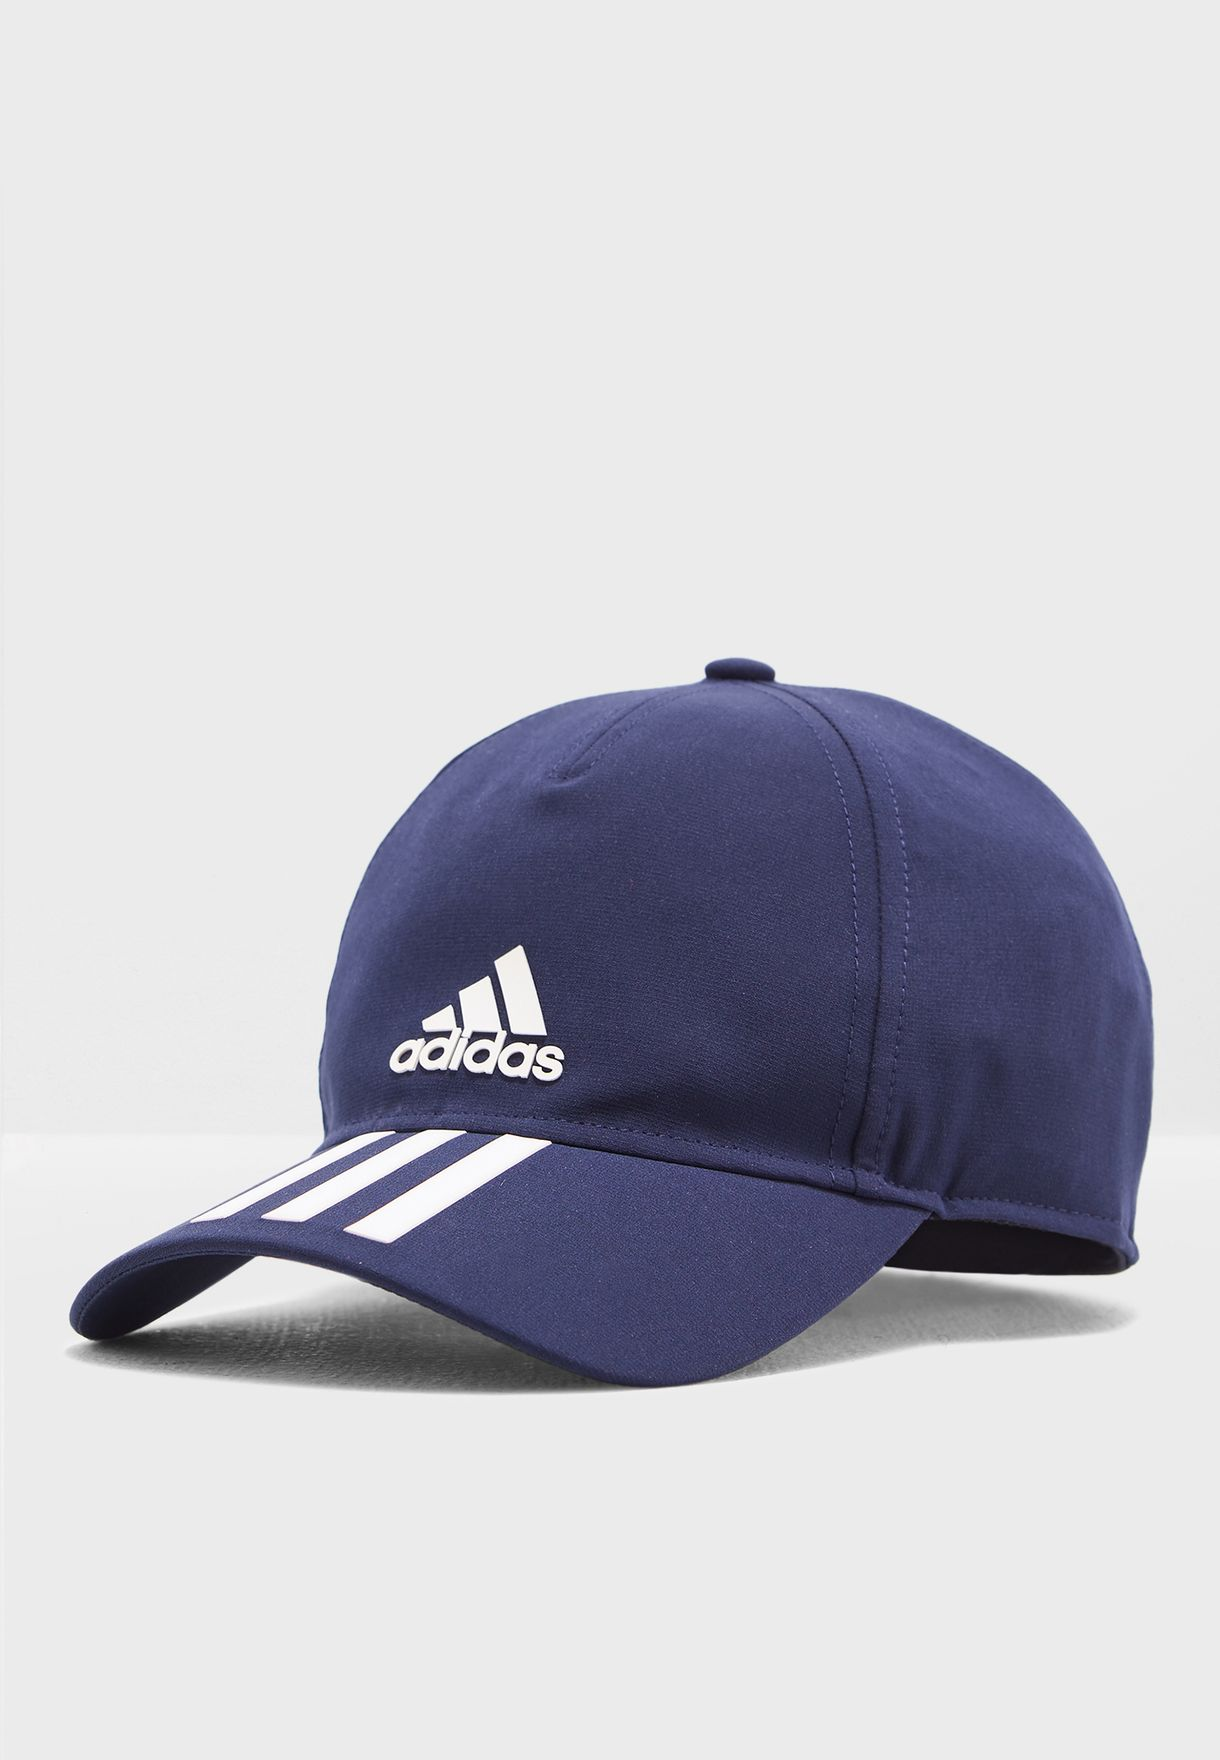 Shop adidas navy C40 6 Panel 3 Stripe Climalite Cap DT8543 for Men in Saudi  - 14448AC65FNP 03f4a82c0478